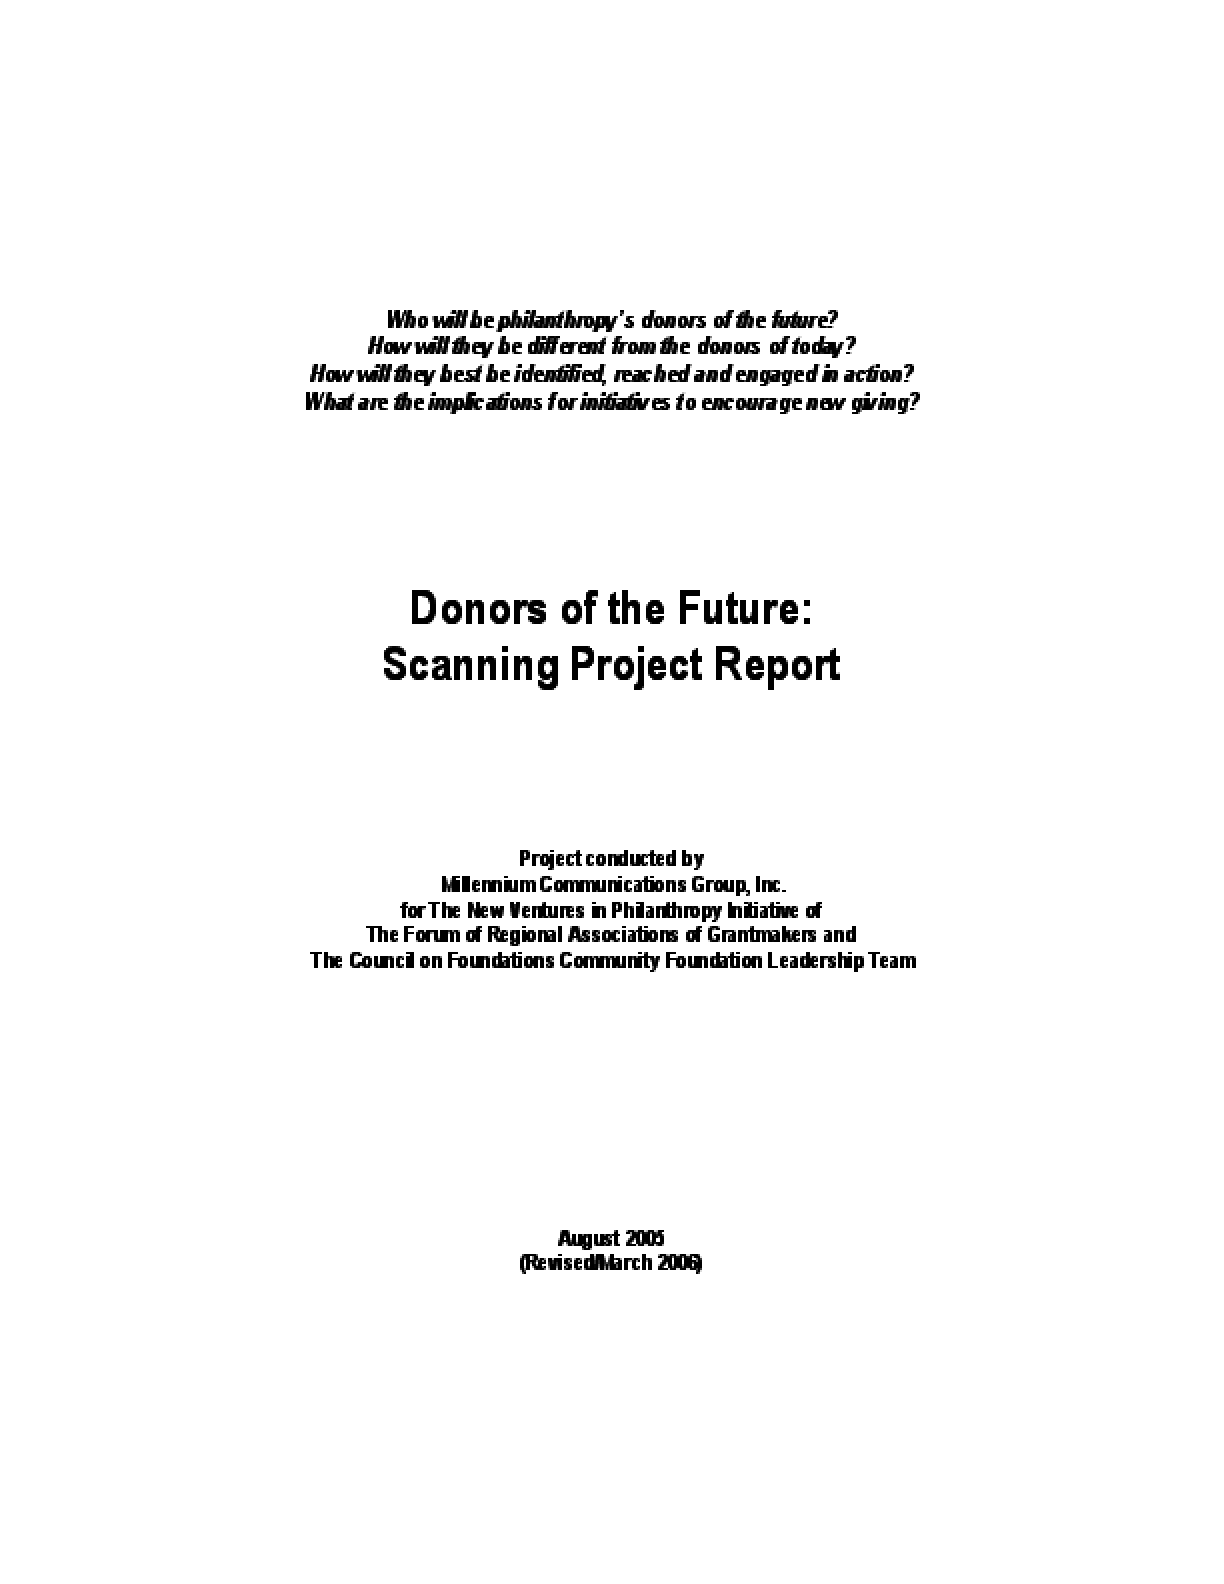 Donors of the Future: Scanning Project Report